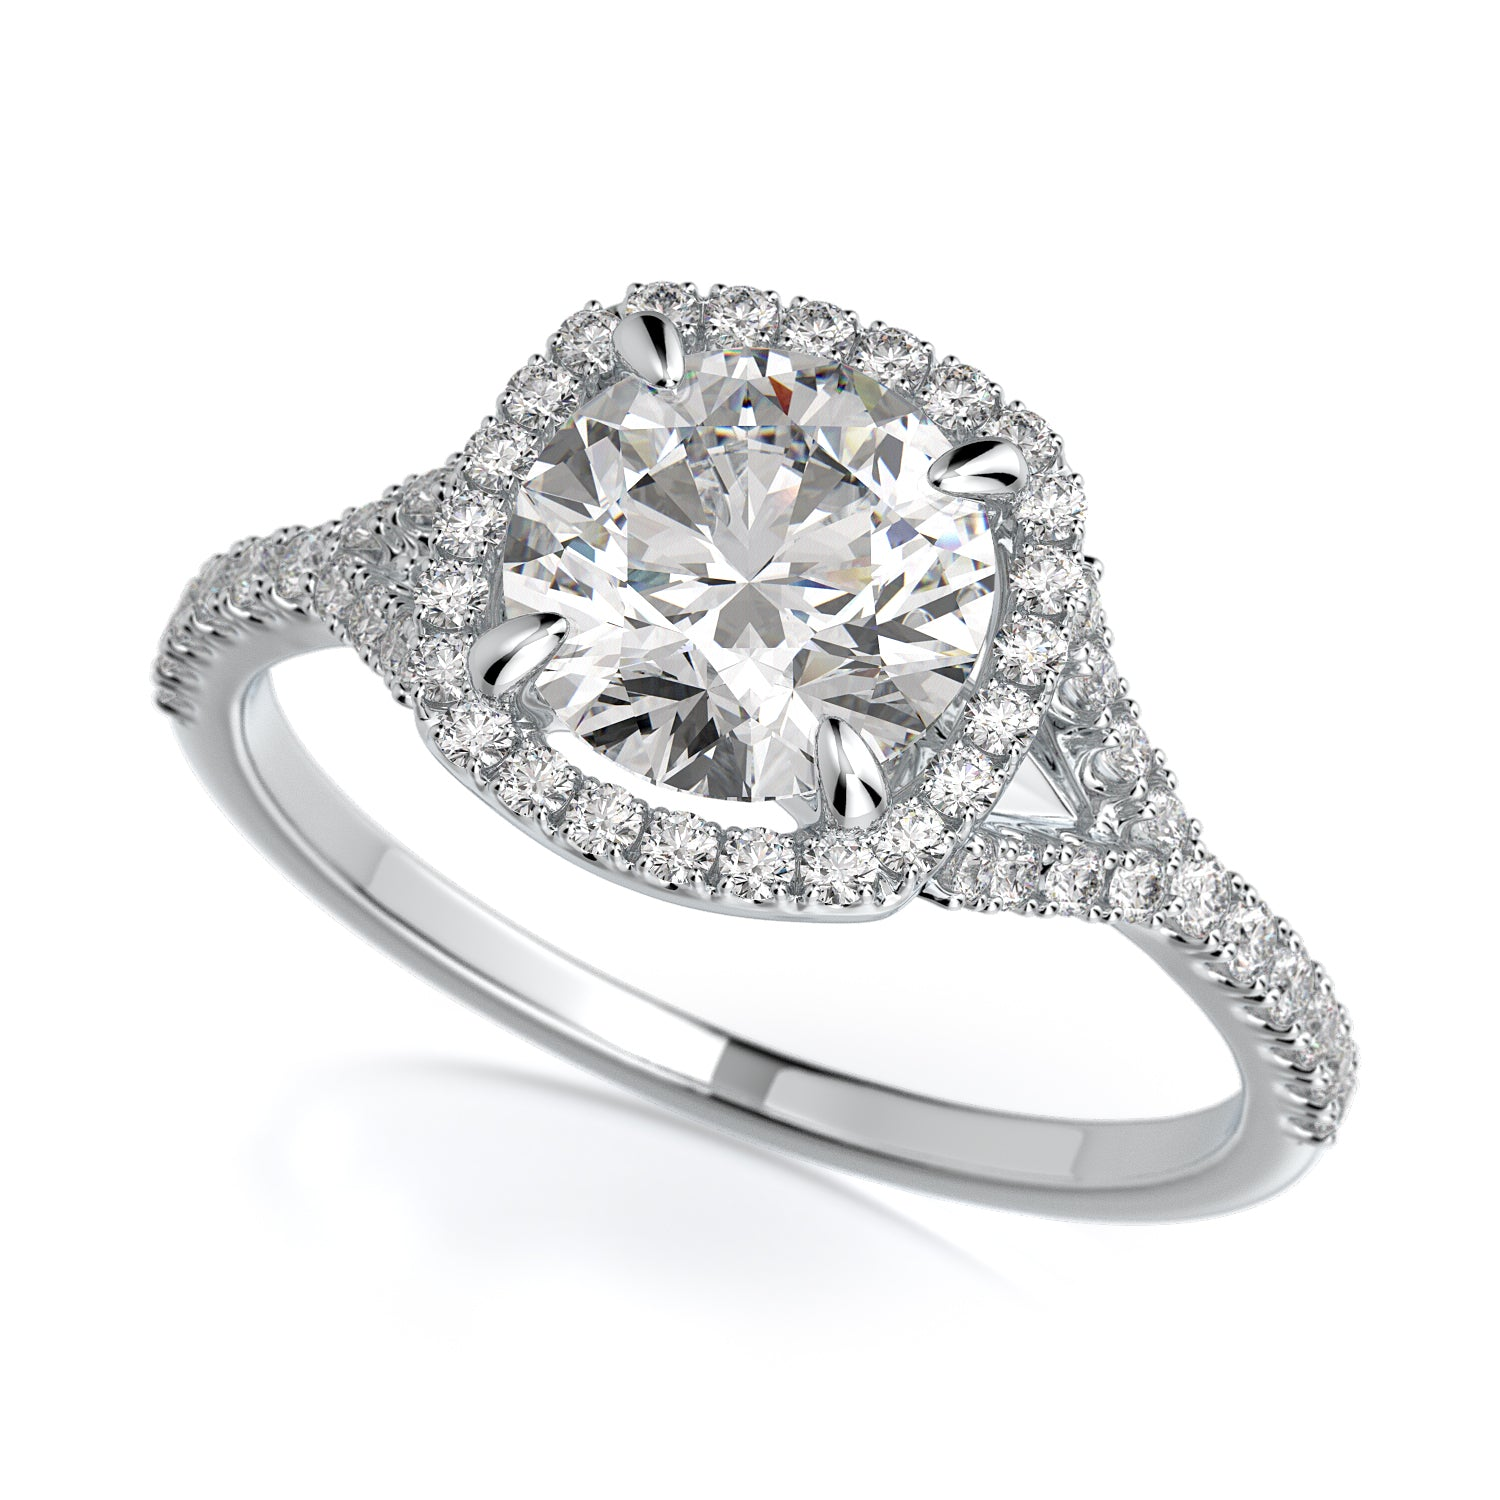 Adrianna Engagement Ring Mounting - Diamond Halo, Split Shank, Round Center Stone